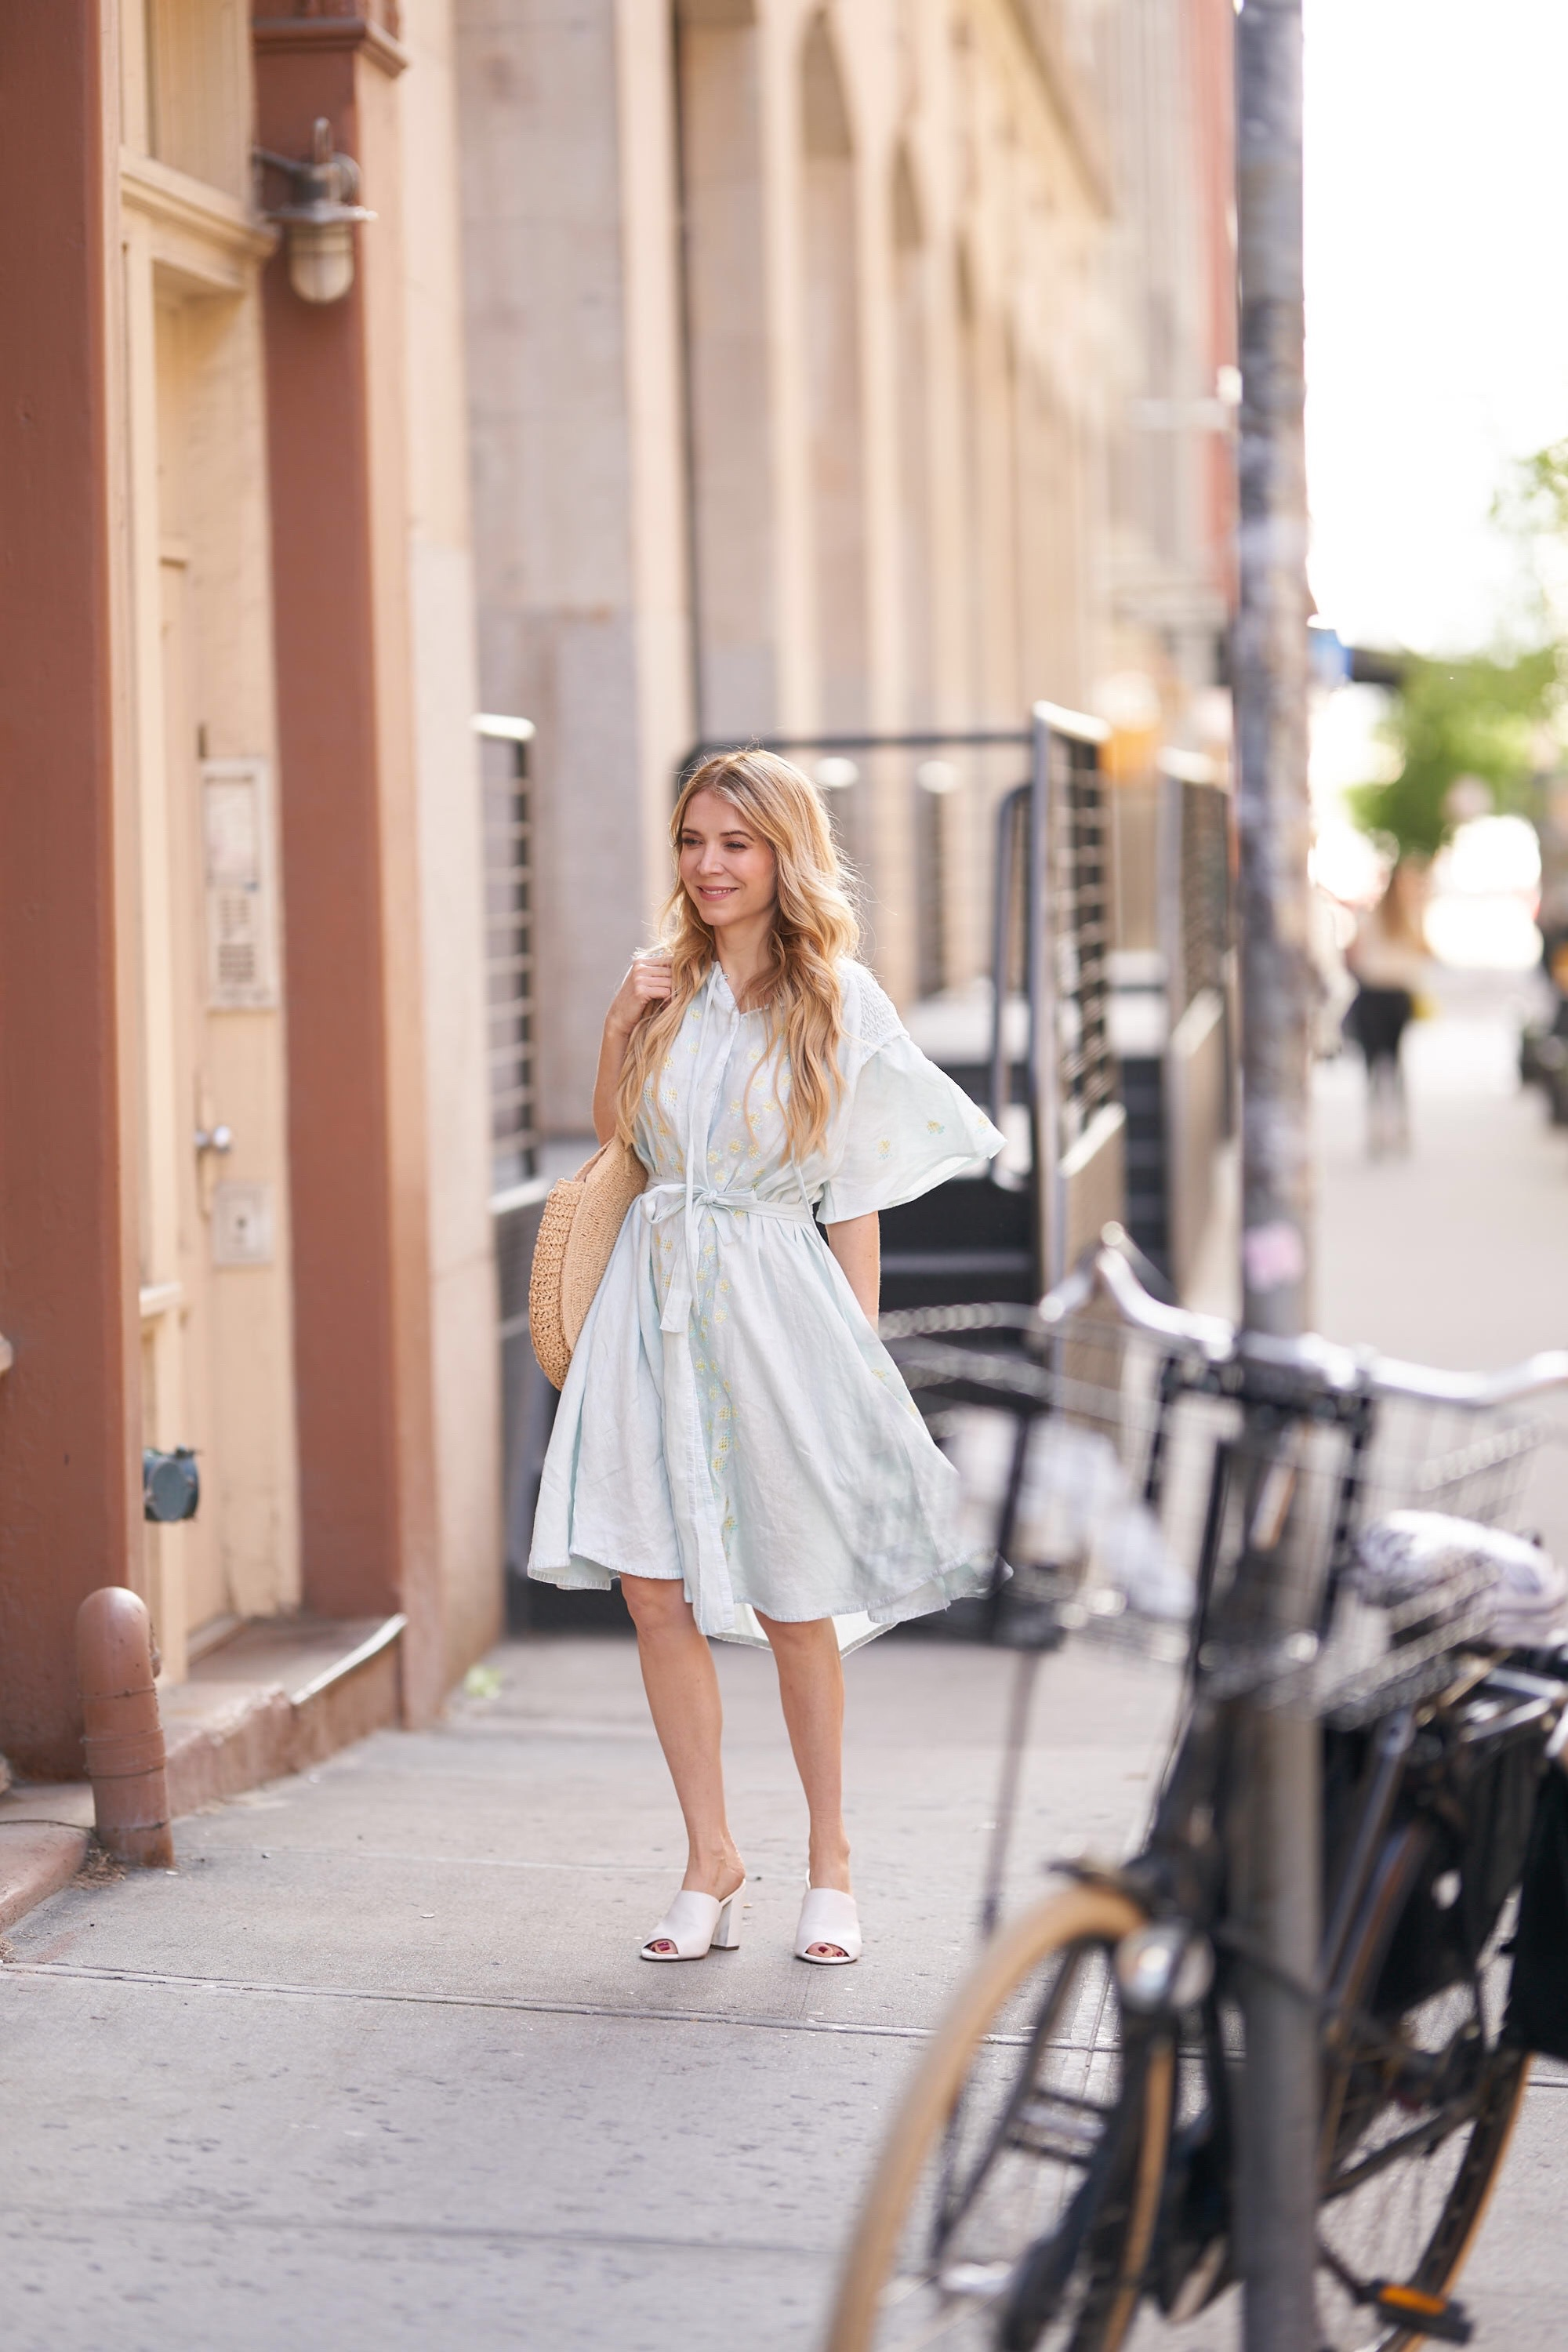 Innika Choo, Innika Choo Hugh Jesmok, Innika Choo dress, www.abouttheoutfitscom, About the Outfits, Laura Bonner